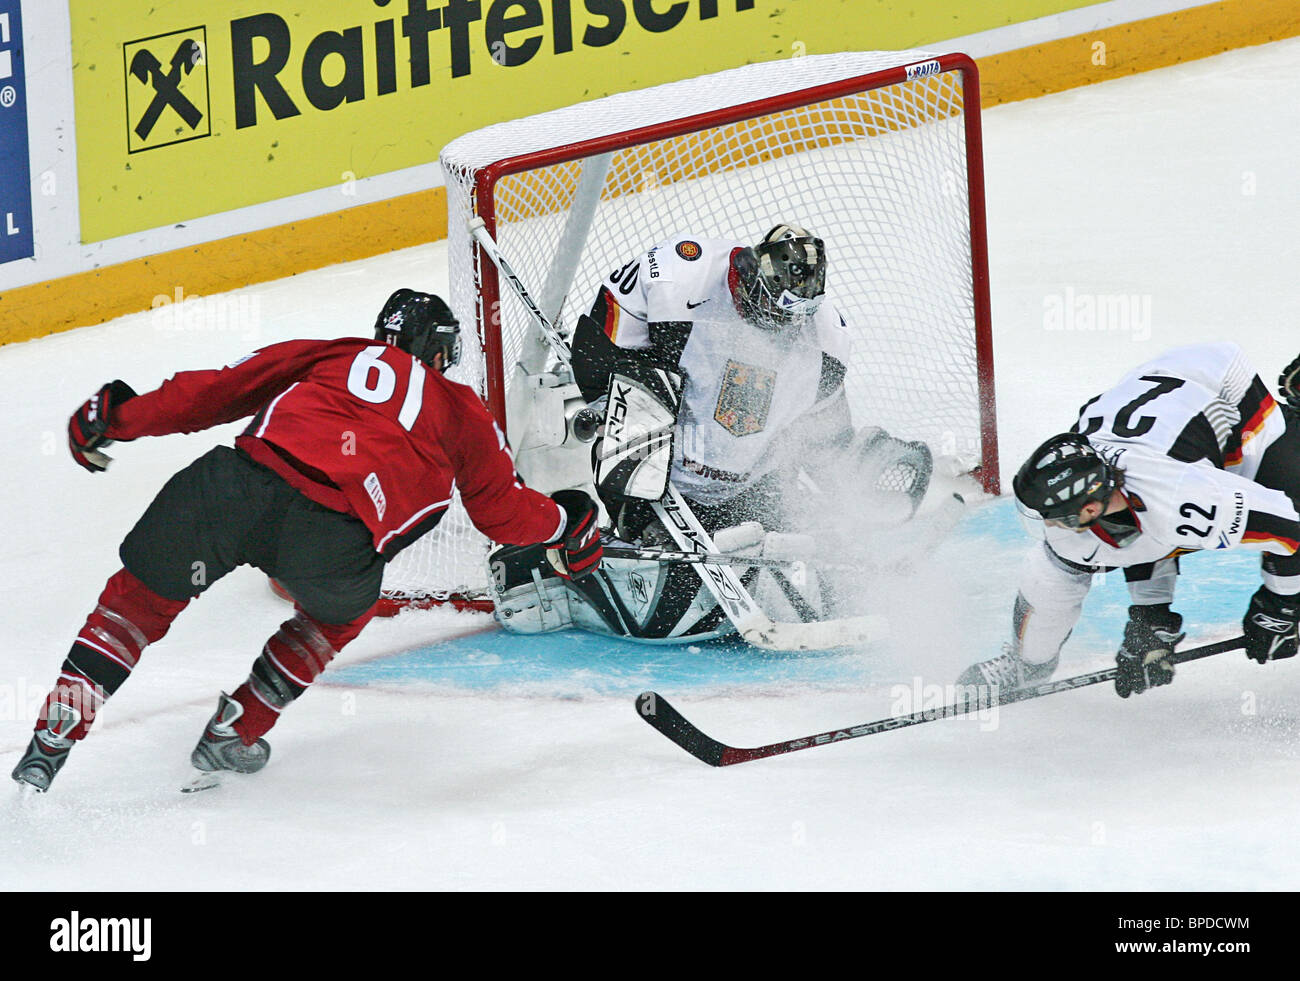 Canada starts hockey world championships with 3-2 win over Germany - Stock Image